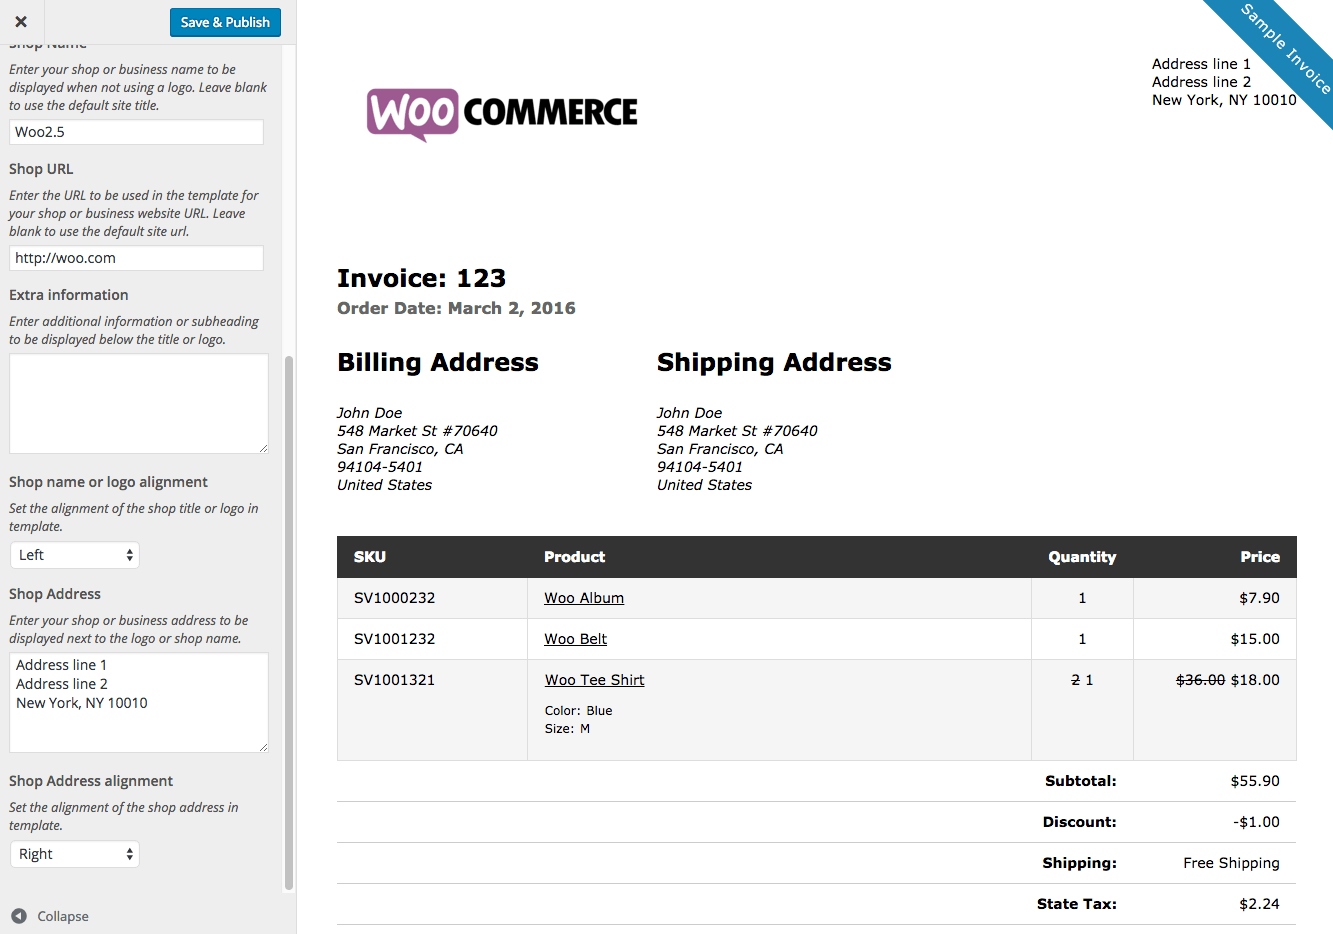 Centralasianshepherdus  Pleasant Print Invoices Amp Packing Lists  Woocommerce With Hot Woocommerce Print Invoices  Packing Lists Customizer With Divine Invoice Template For Free Also How To Make A Invoice Template In Addition Ram Invoice Pricing And Invoice Tmeplate As Well As Auto Repair Shop Invoice Software Additionally Commission Invoice Template From Woocommercecom With Centralasianshepherdus  Hot Print Invoices Amp Packing Lists  Woocommerce With Divine Woocommerce Print Invoices  Packing Lists Customizer And Pleasant Invoice Template For Free Also How To Make A Invoice Template In Addition Ram Invoice Pricing From Woocommercecom